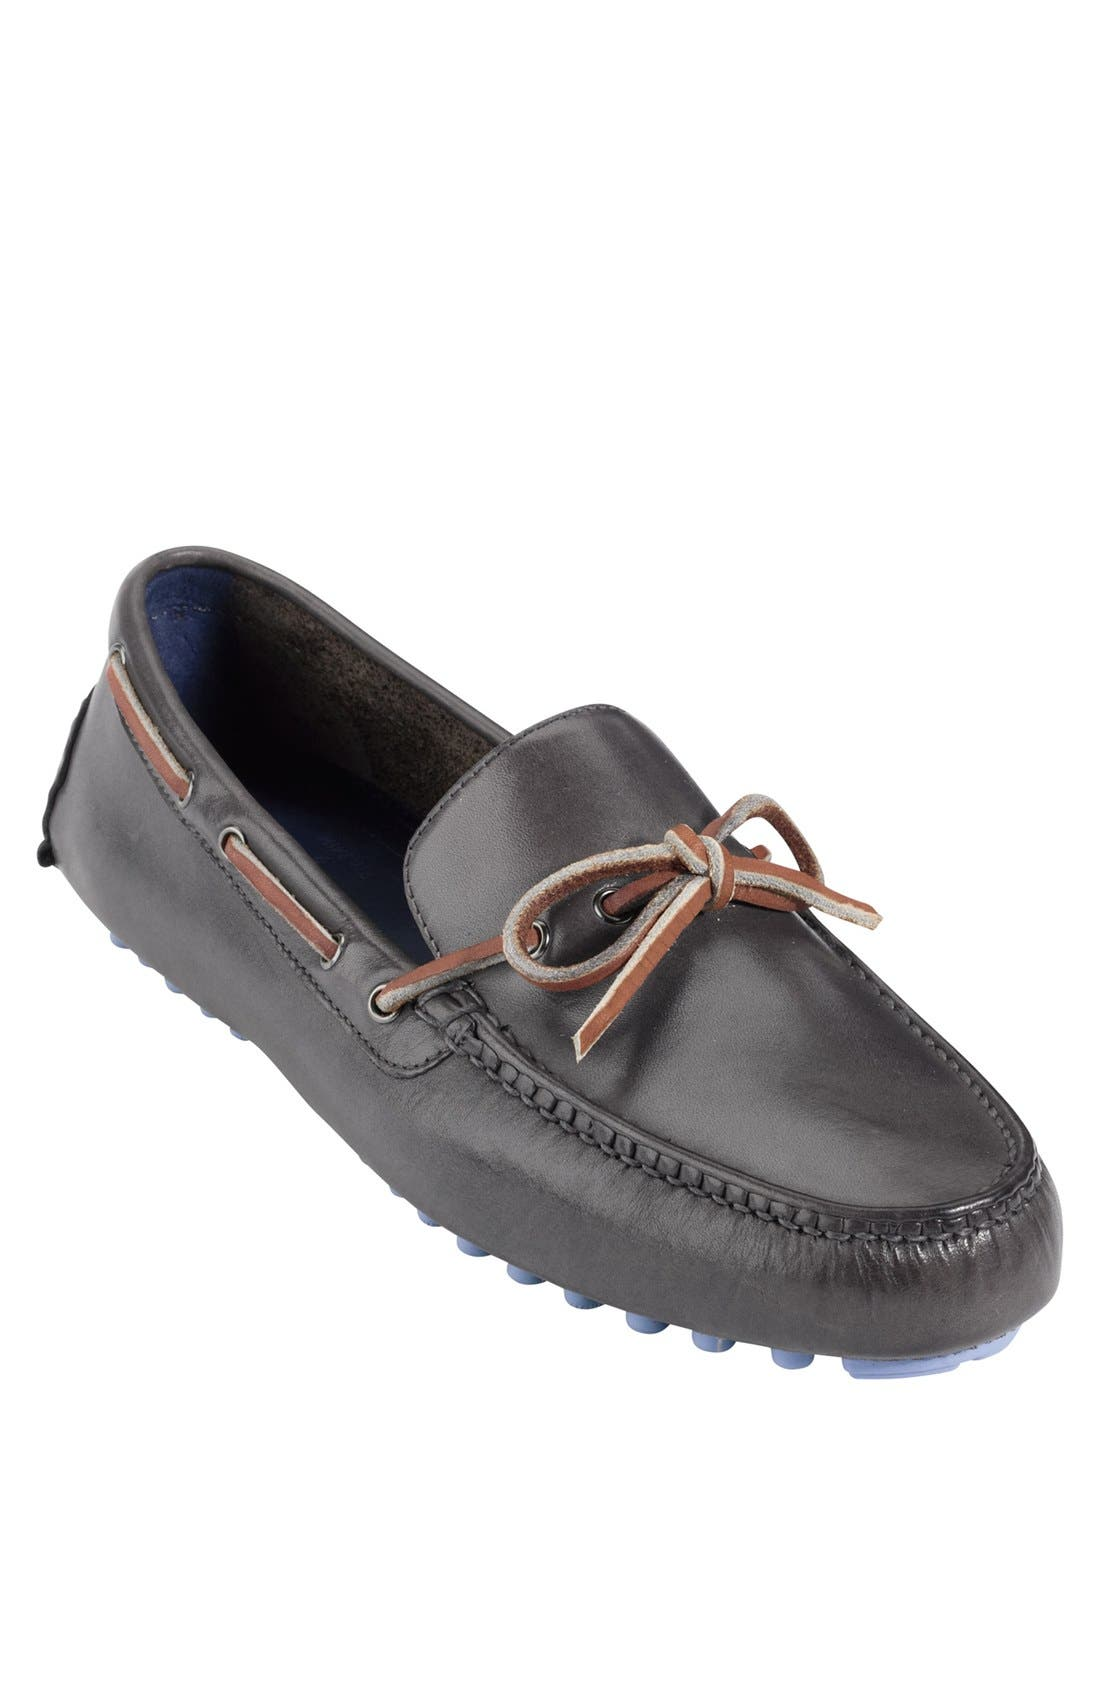 Alternate Image 1 Selected - Cole Haan 'Air Grant' Loafer (Men)